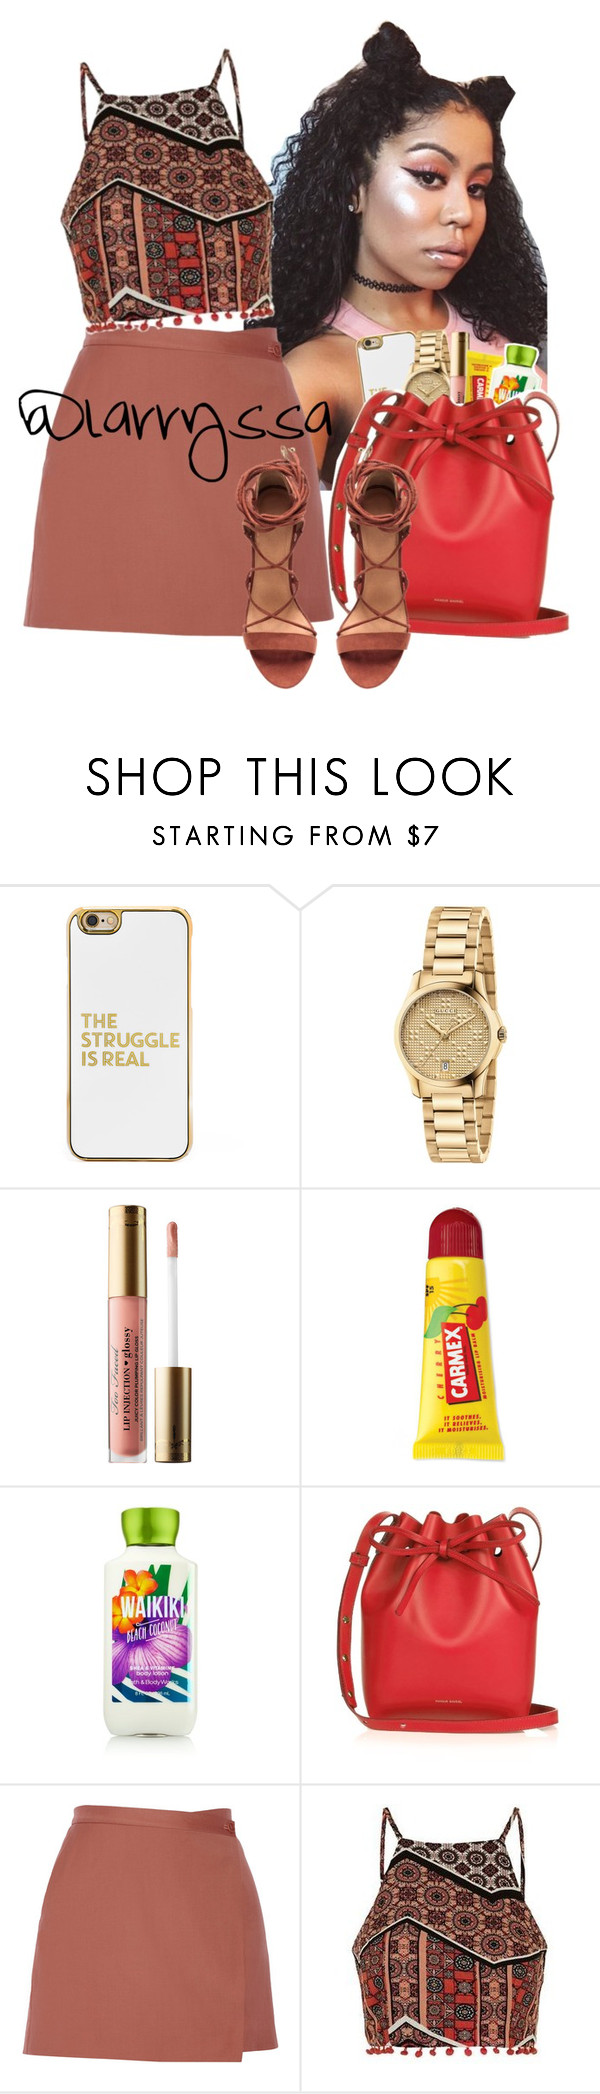 """""""Level Up"""" by larryssa ❤ liked on Polyvore featuring BaubleBar, Gucci, Too Faced Cosmetics, Carmex, Mansur Gavriel, Theory and Topshop"""